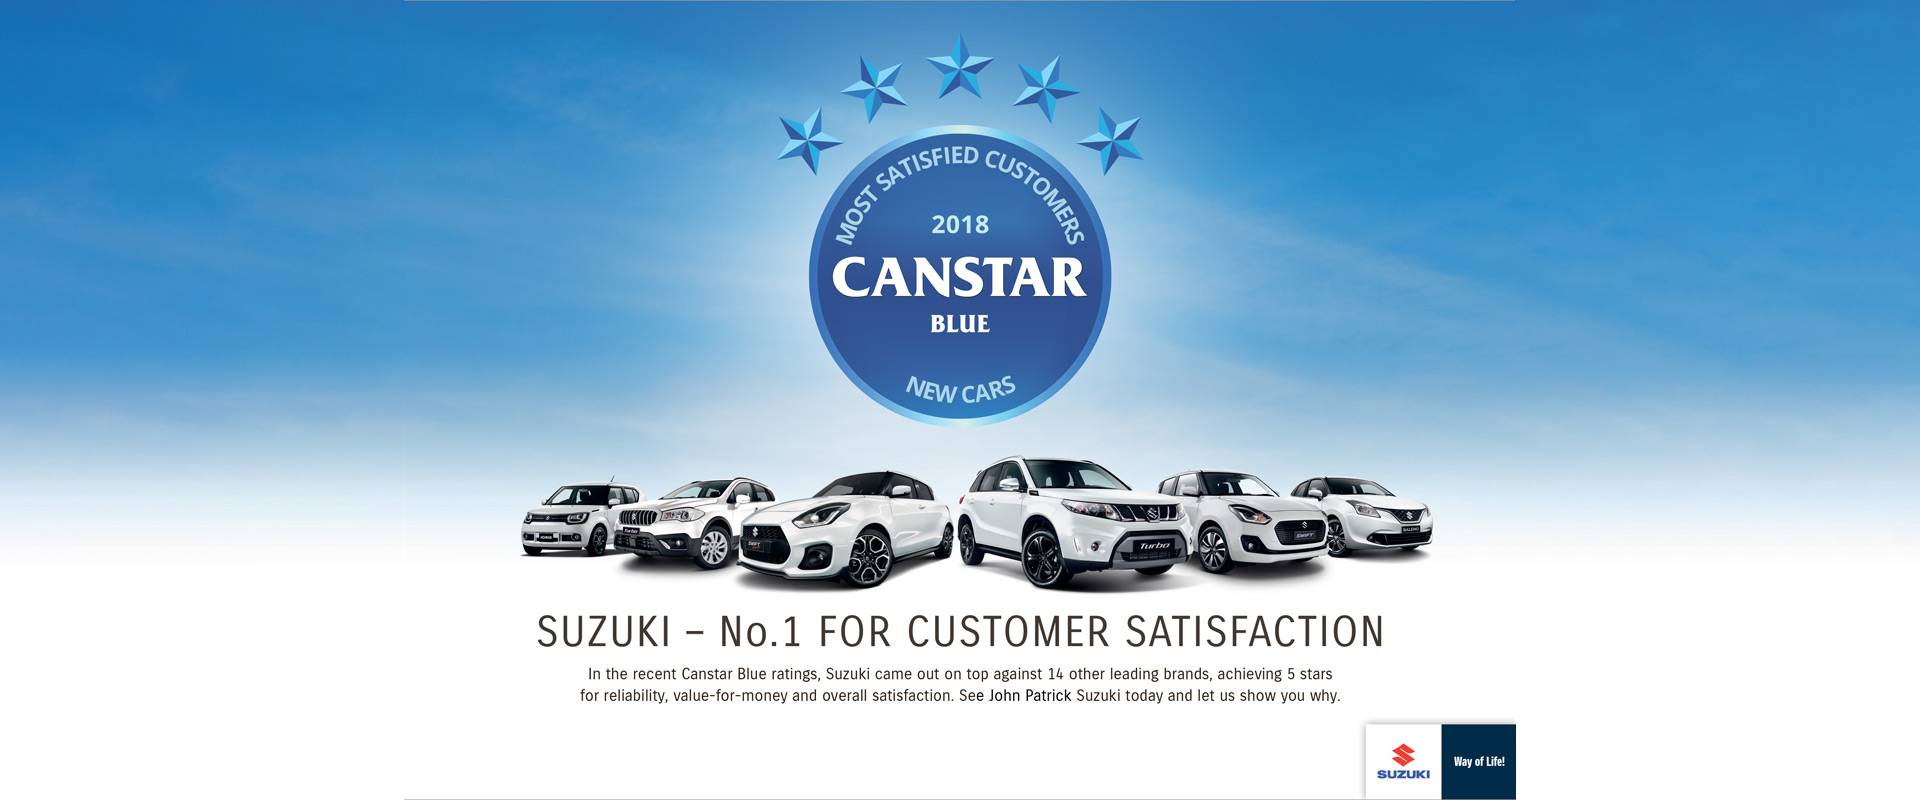 Suzuki-Number-one-for-customer-satisfaction